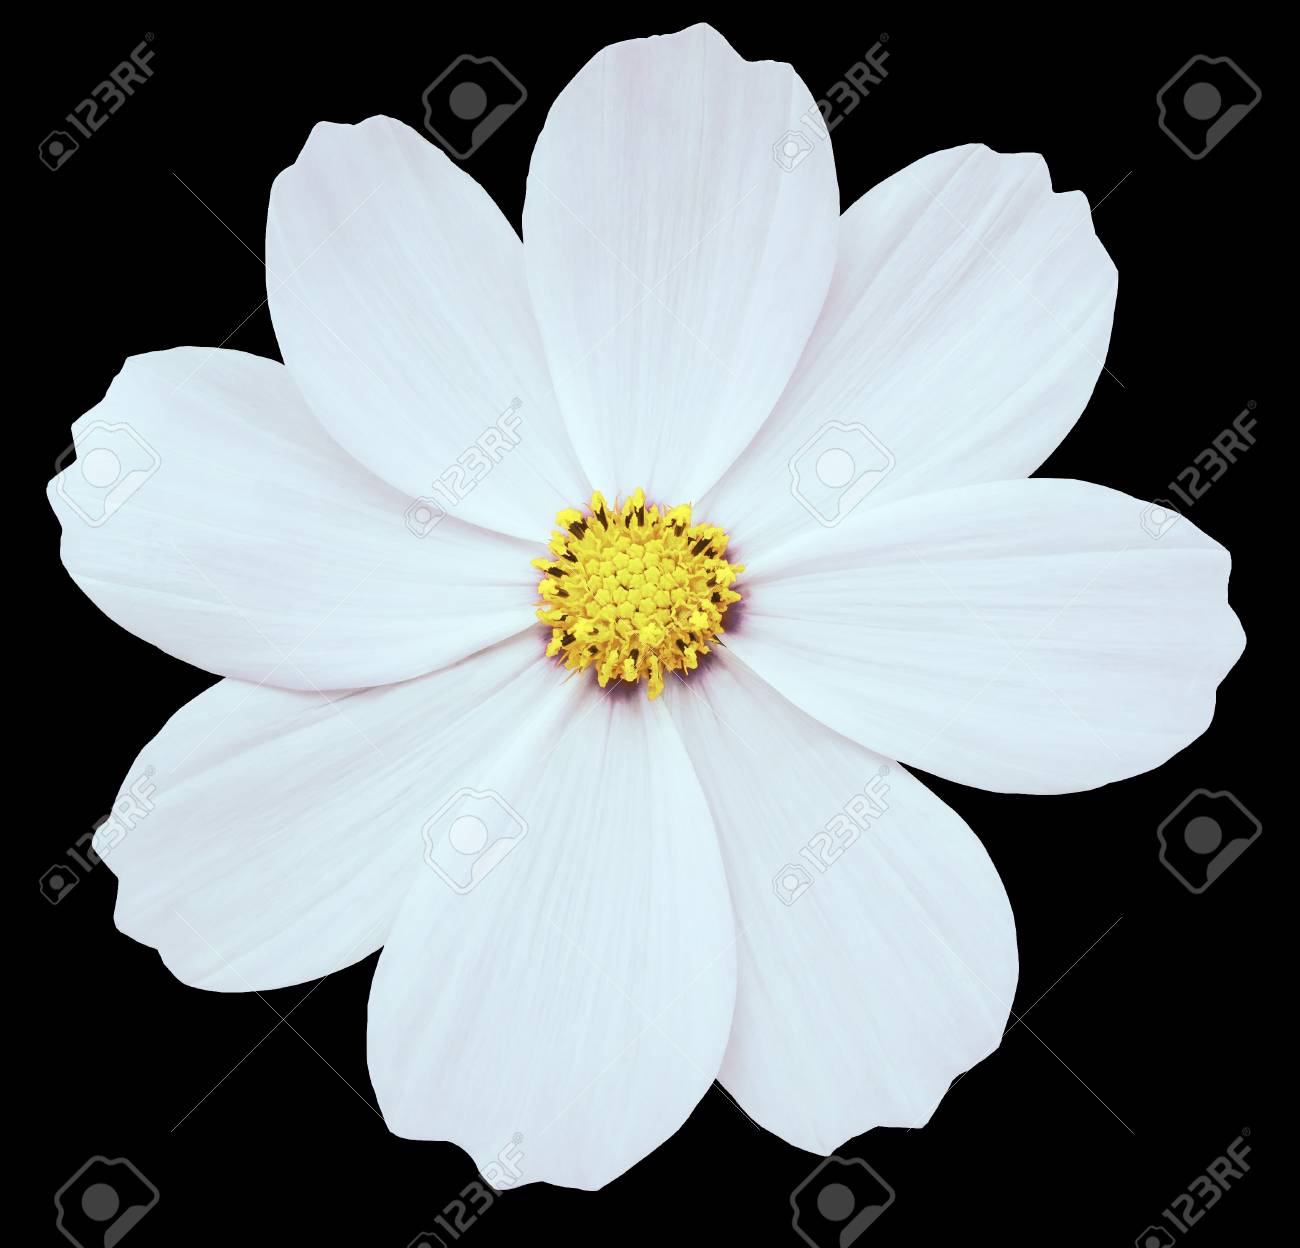 White flower primula black isolated background with clipping stock photo white flower primula black isolated background with clipping path closeup no shadows yellow center nature mightylinksfo